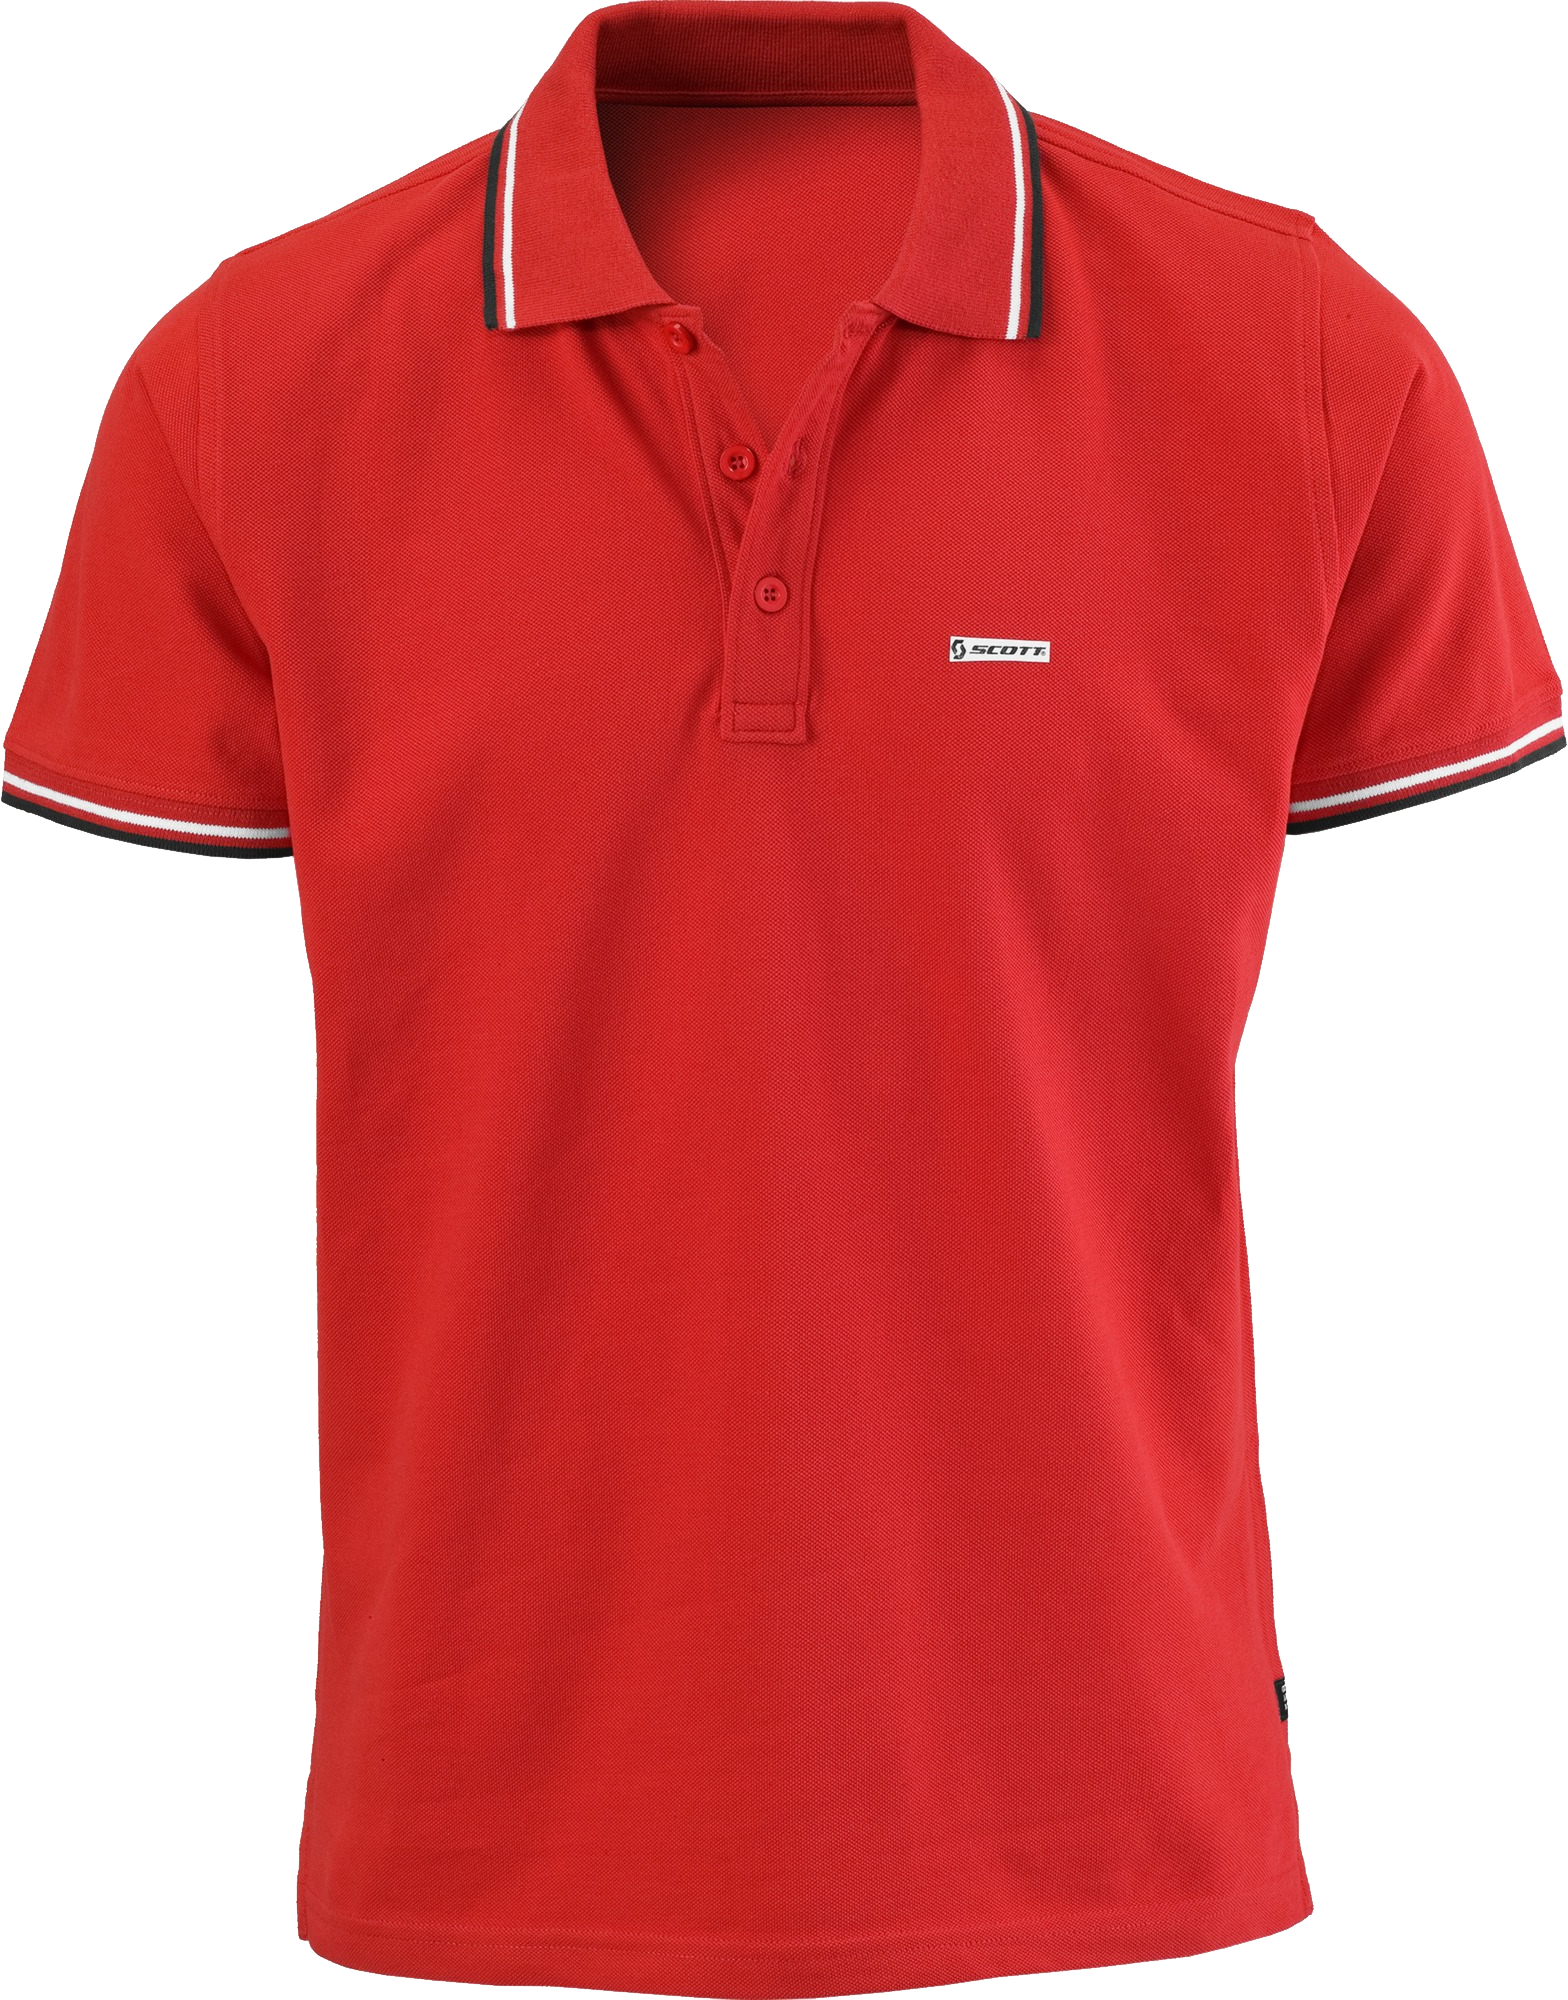 Polo Shirt PNG Transparent Polo Shirt.PNG Images..